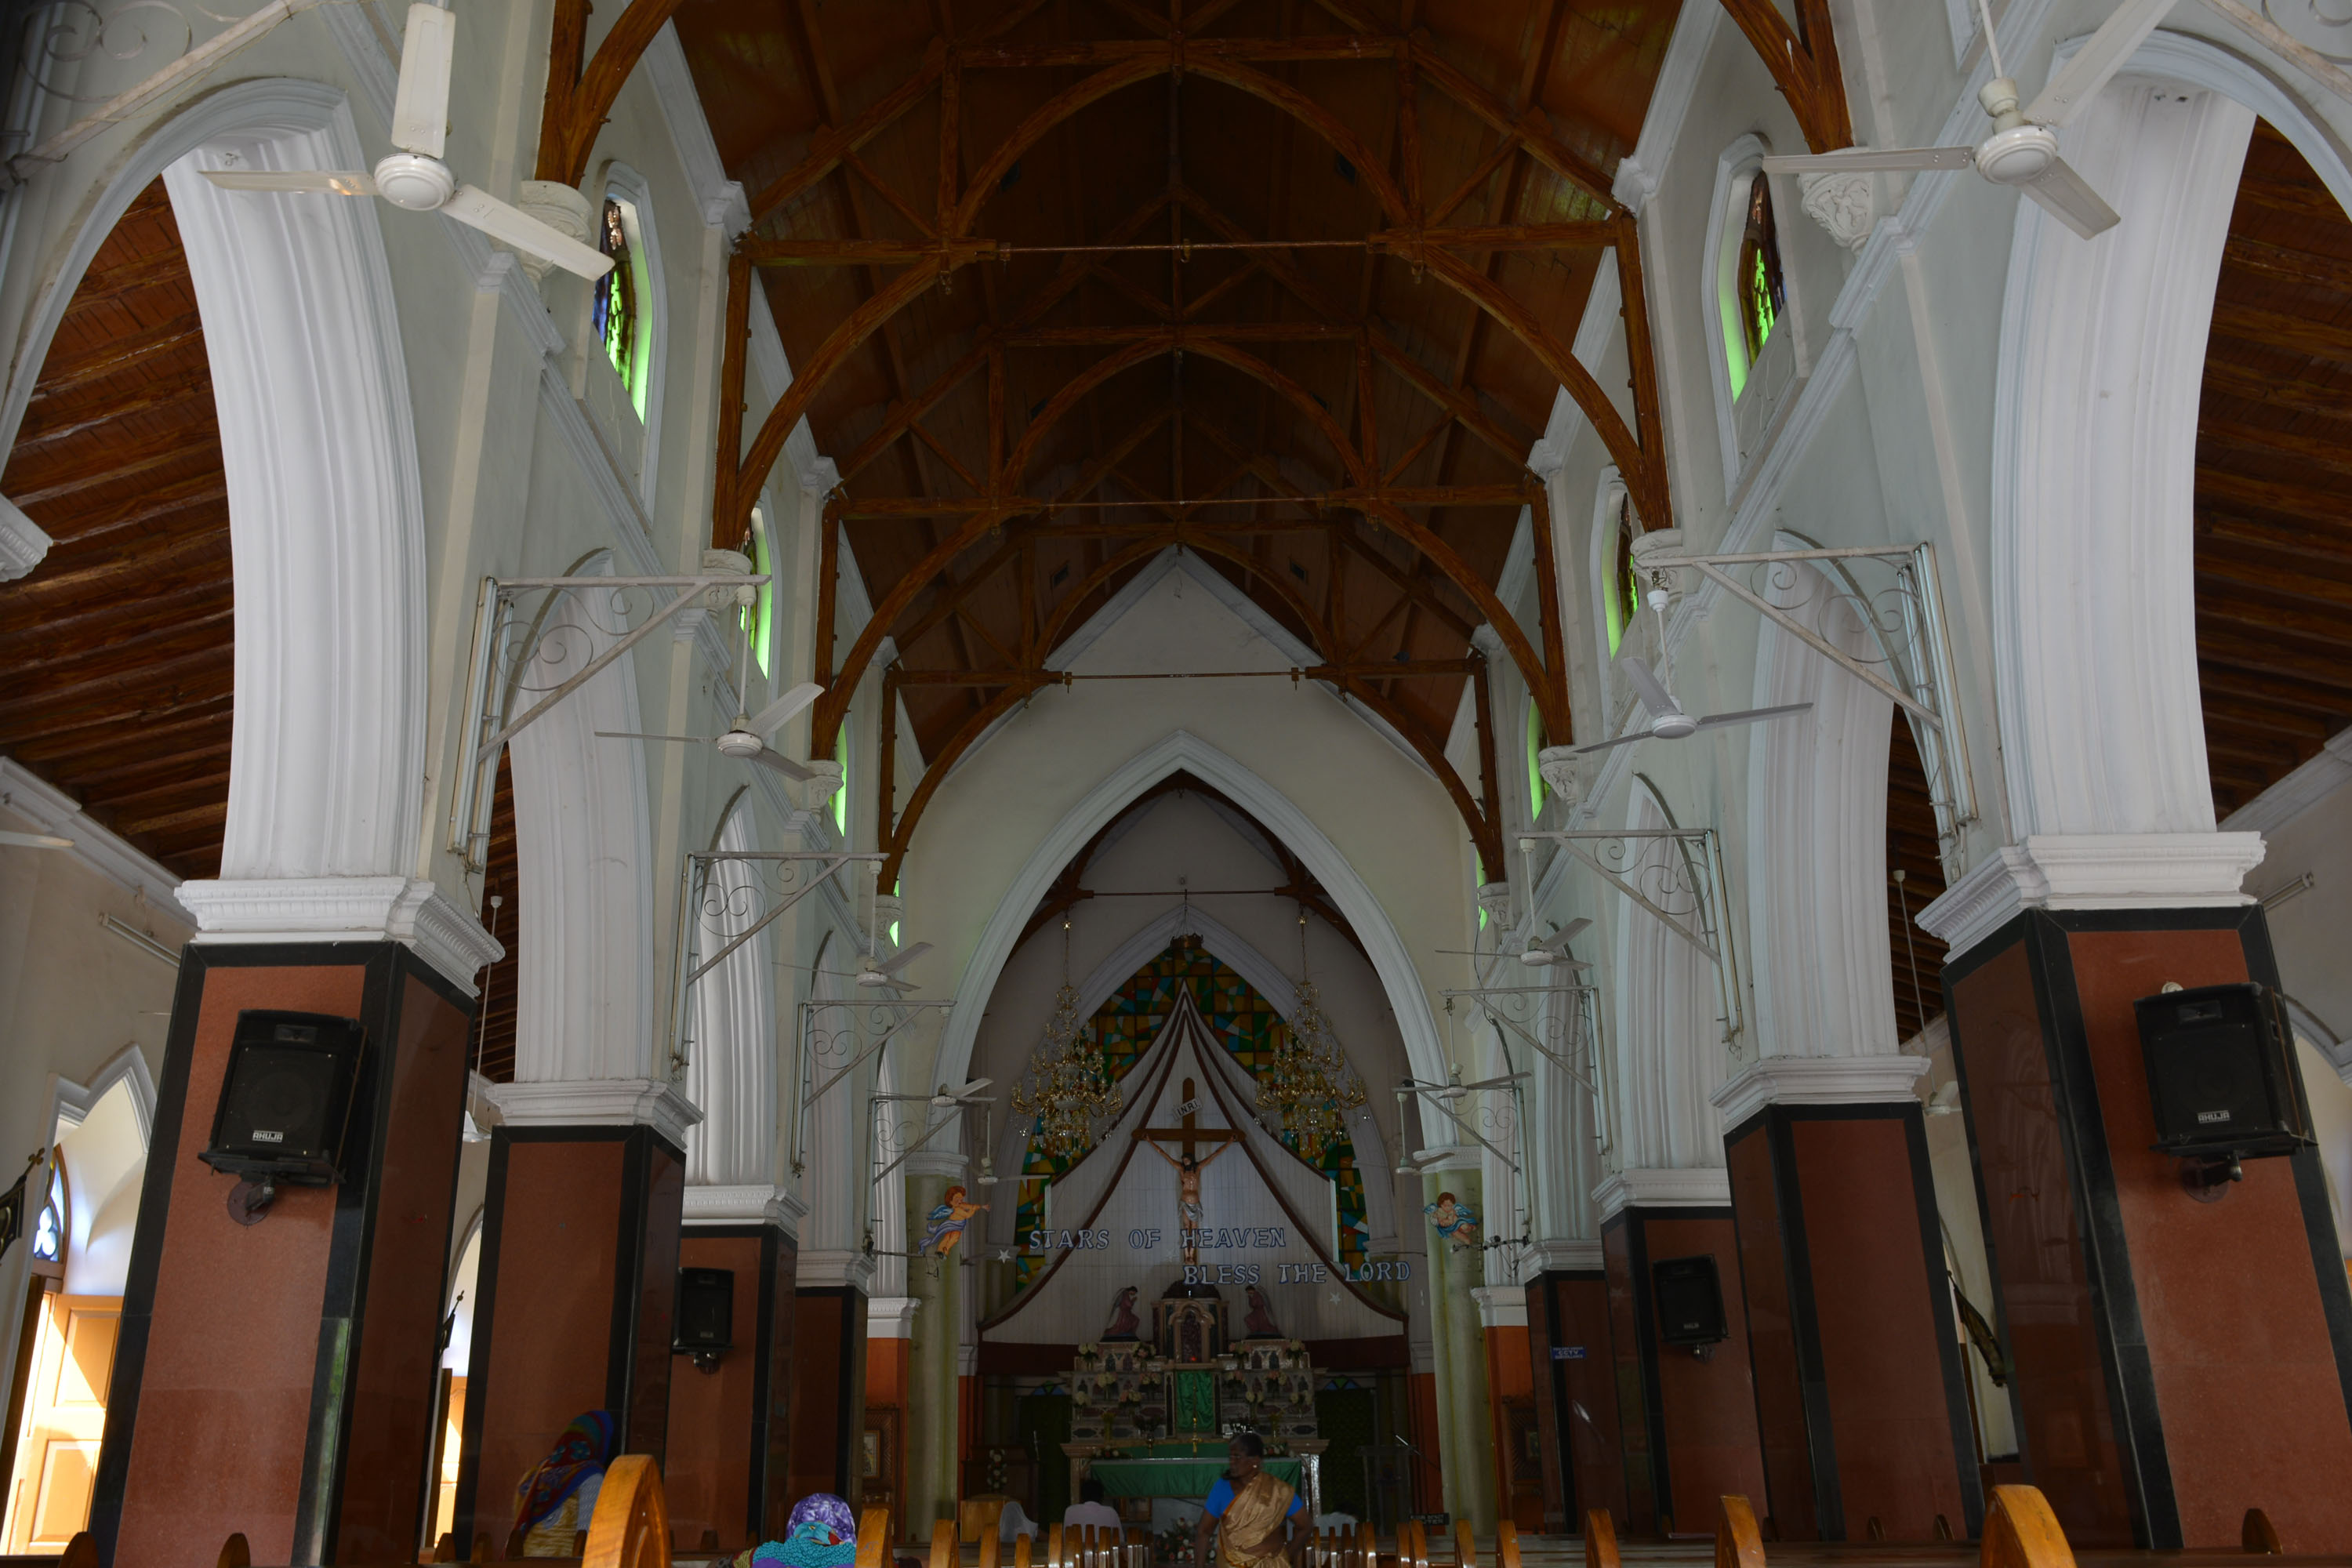 church secunderabad, free indian stock photos and images